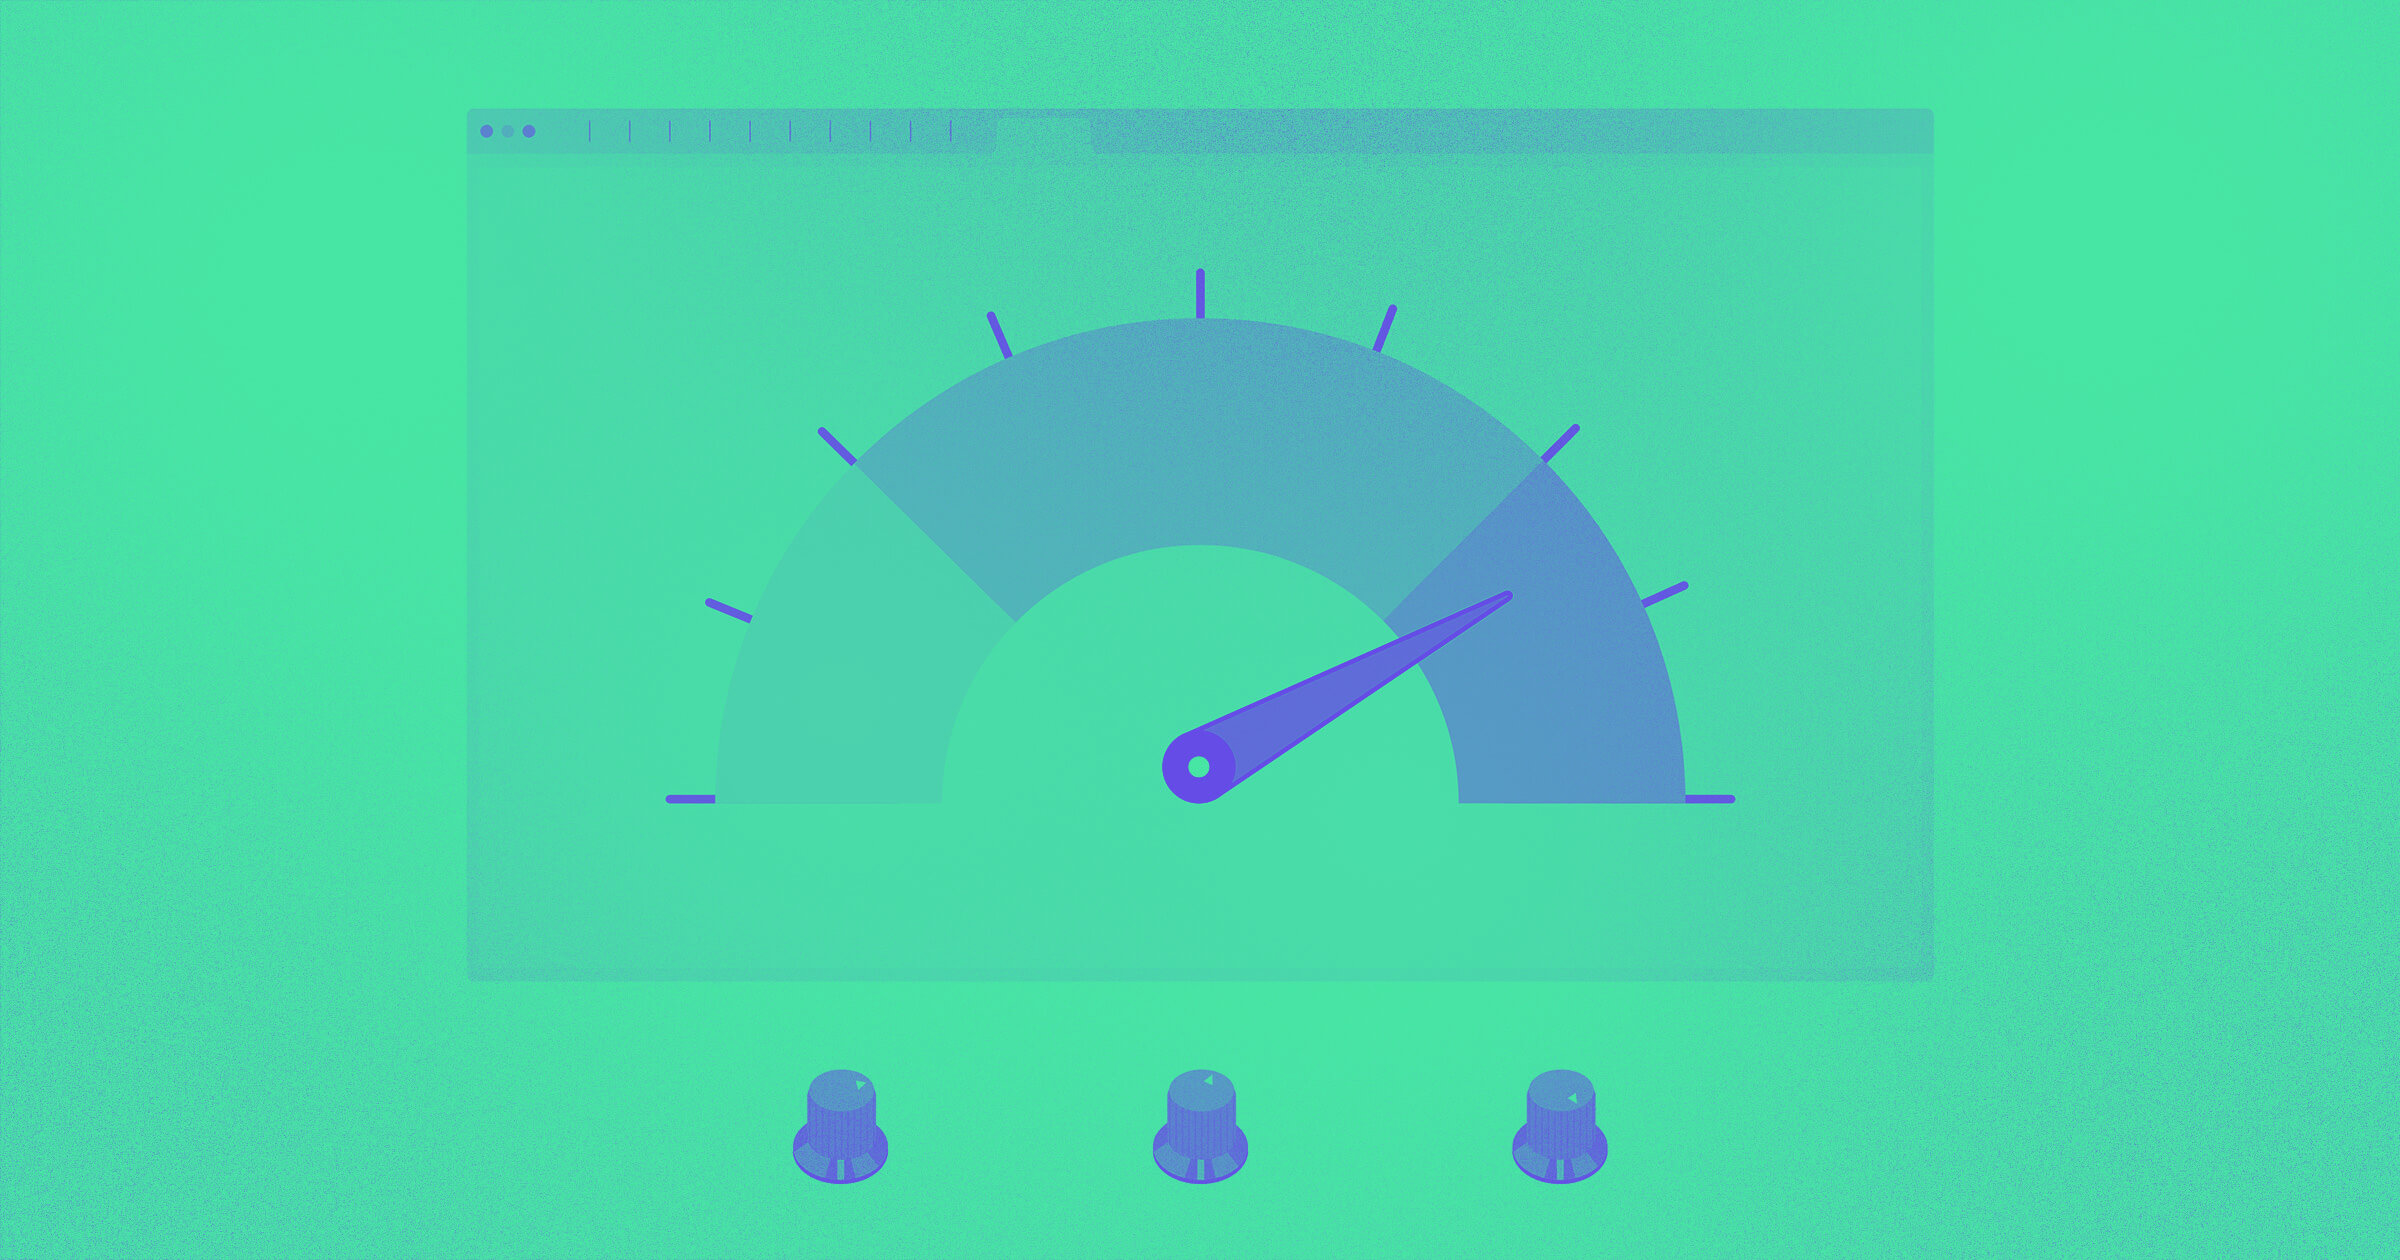 Performance optimization features to make your site run even faster